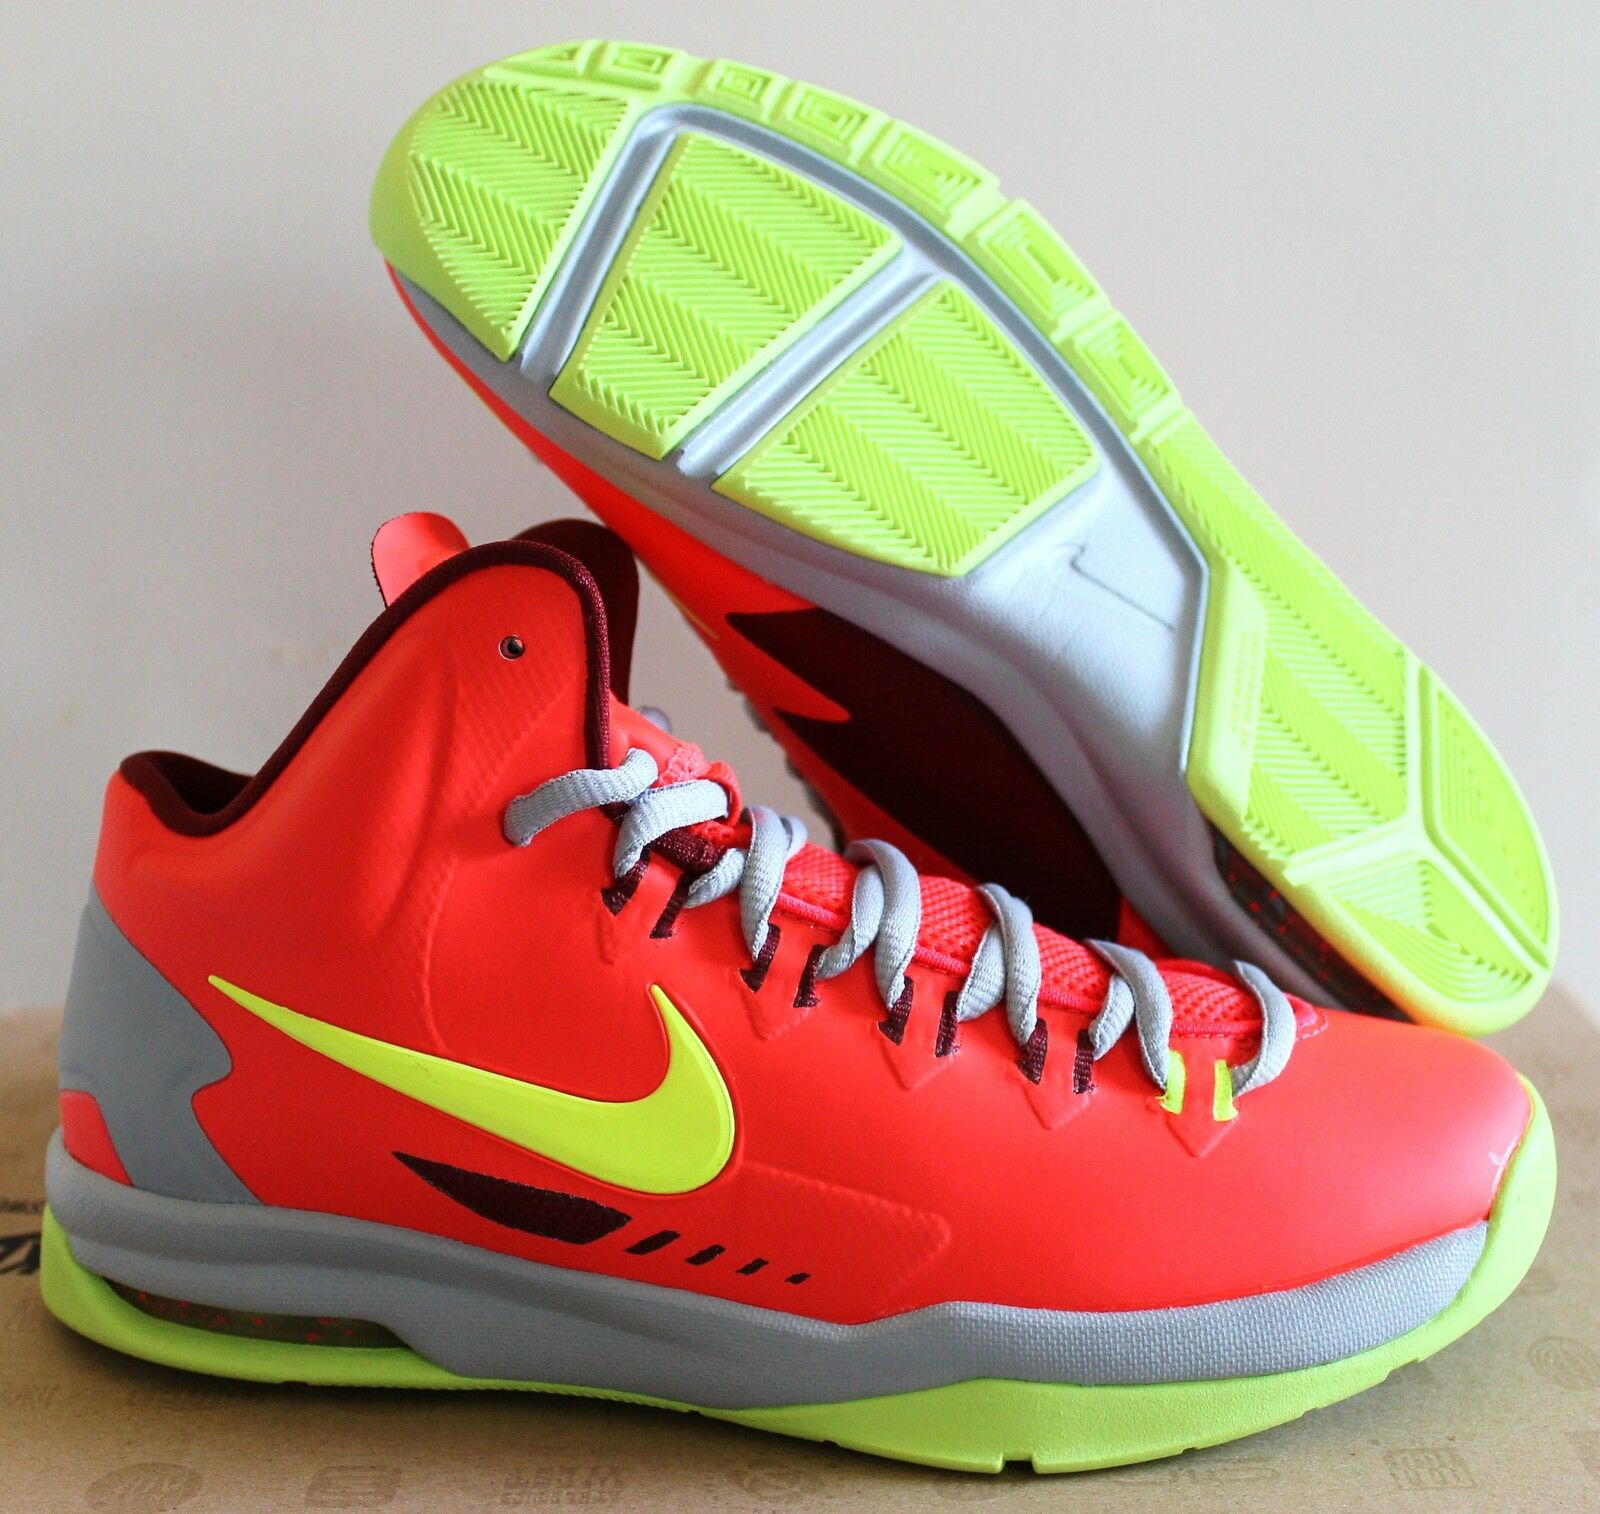 NIKE (GS) KD V 5 BRIGHT CRIMSON-WHITE-WOLF GREY SZ 4.5Y=WOMEN SZ 6 [555641 600]